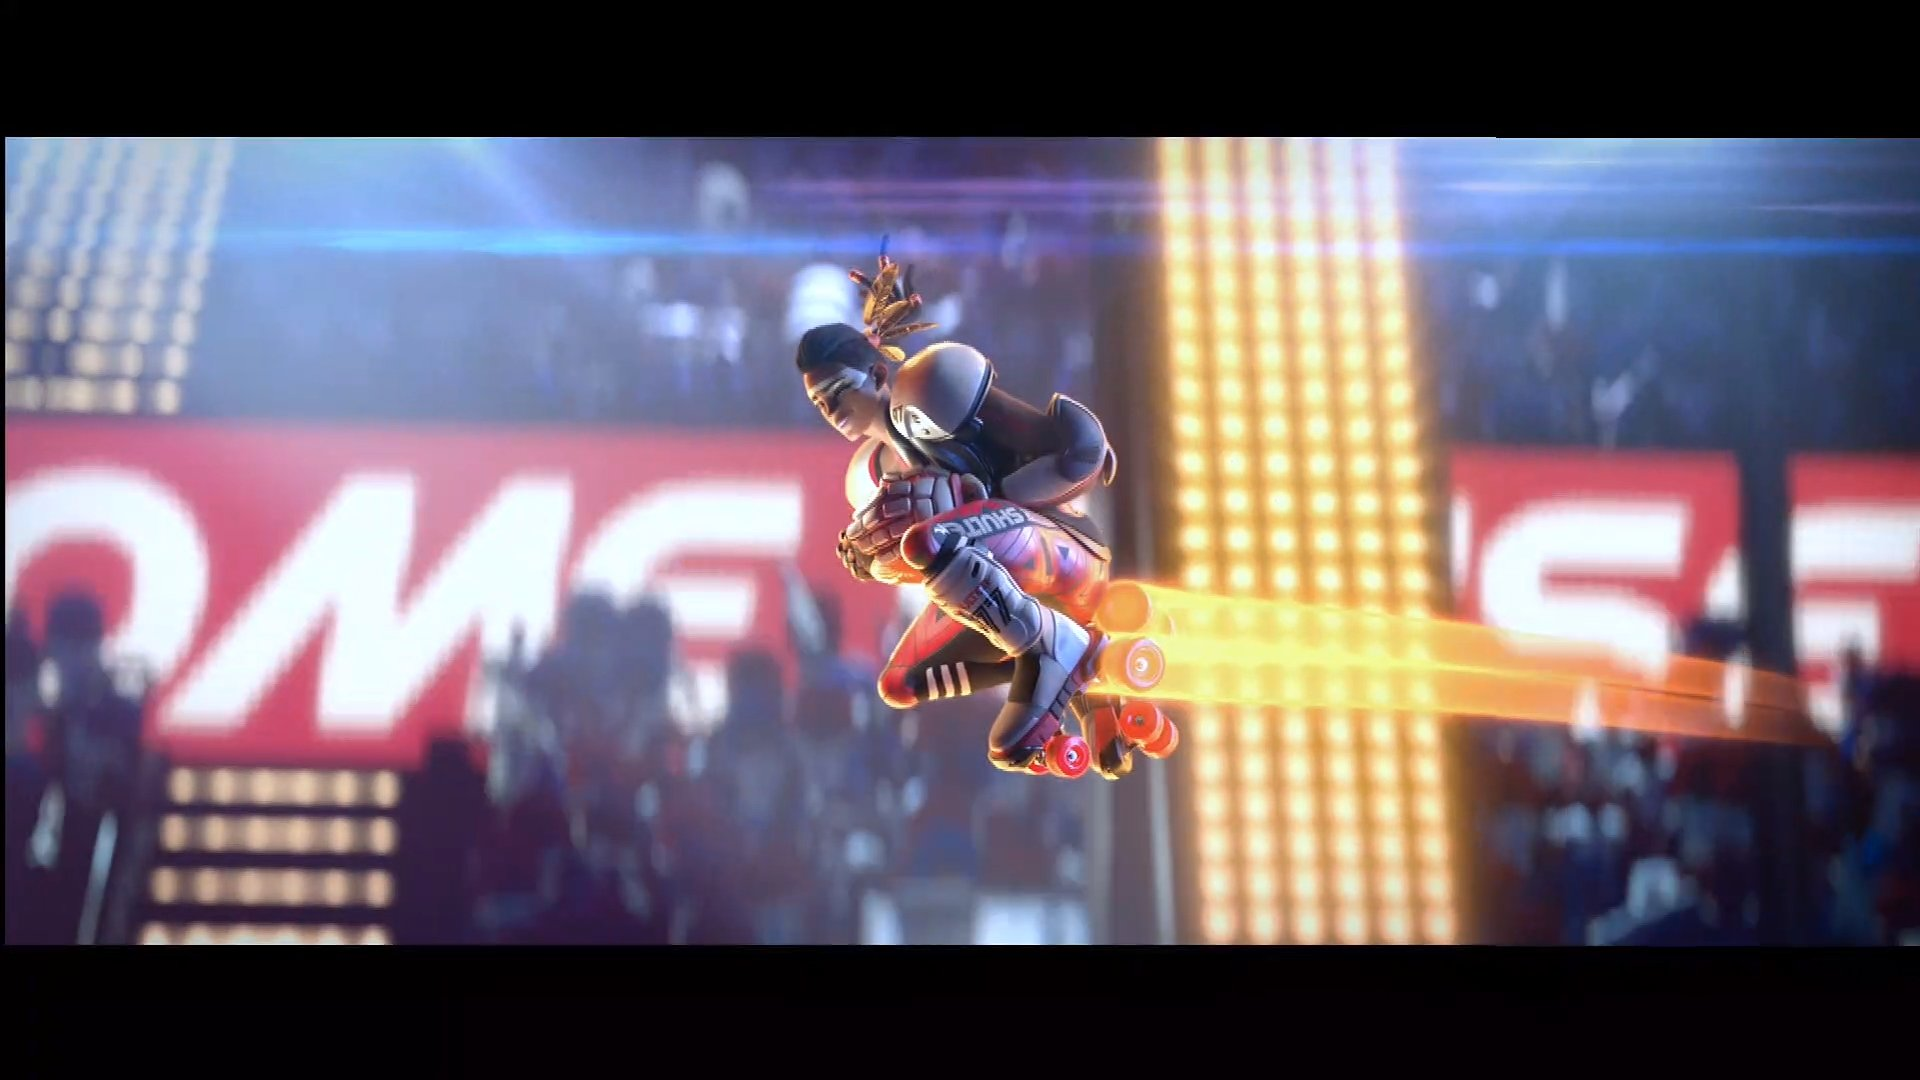 Ubisoft's roller derby game Roller Champions is playable